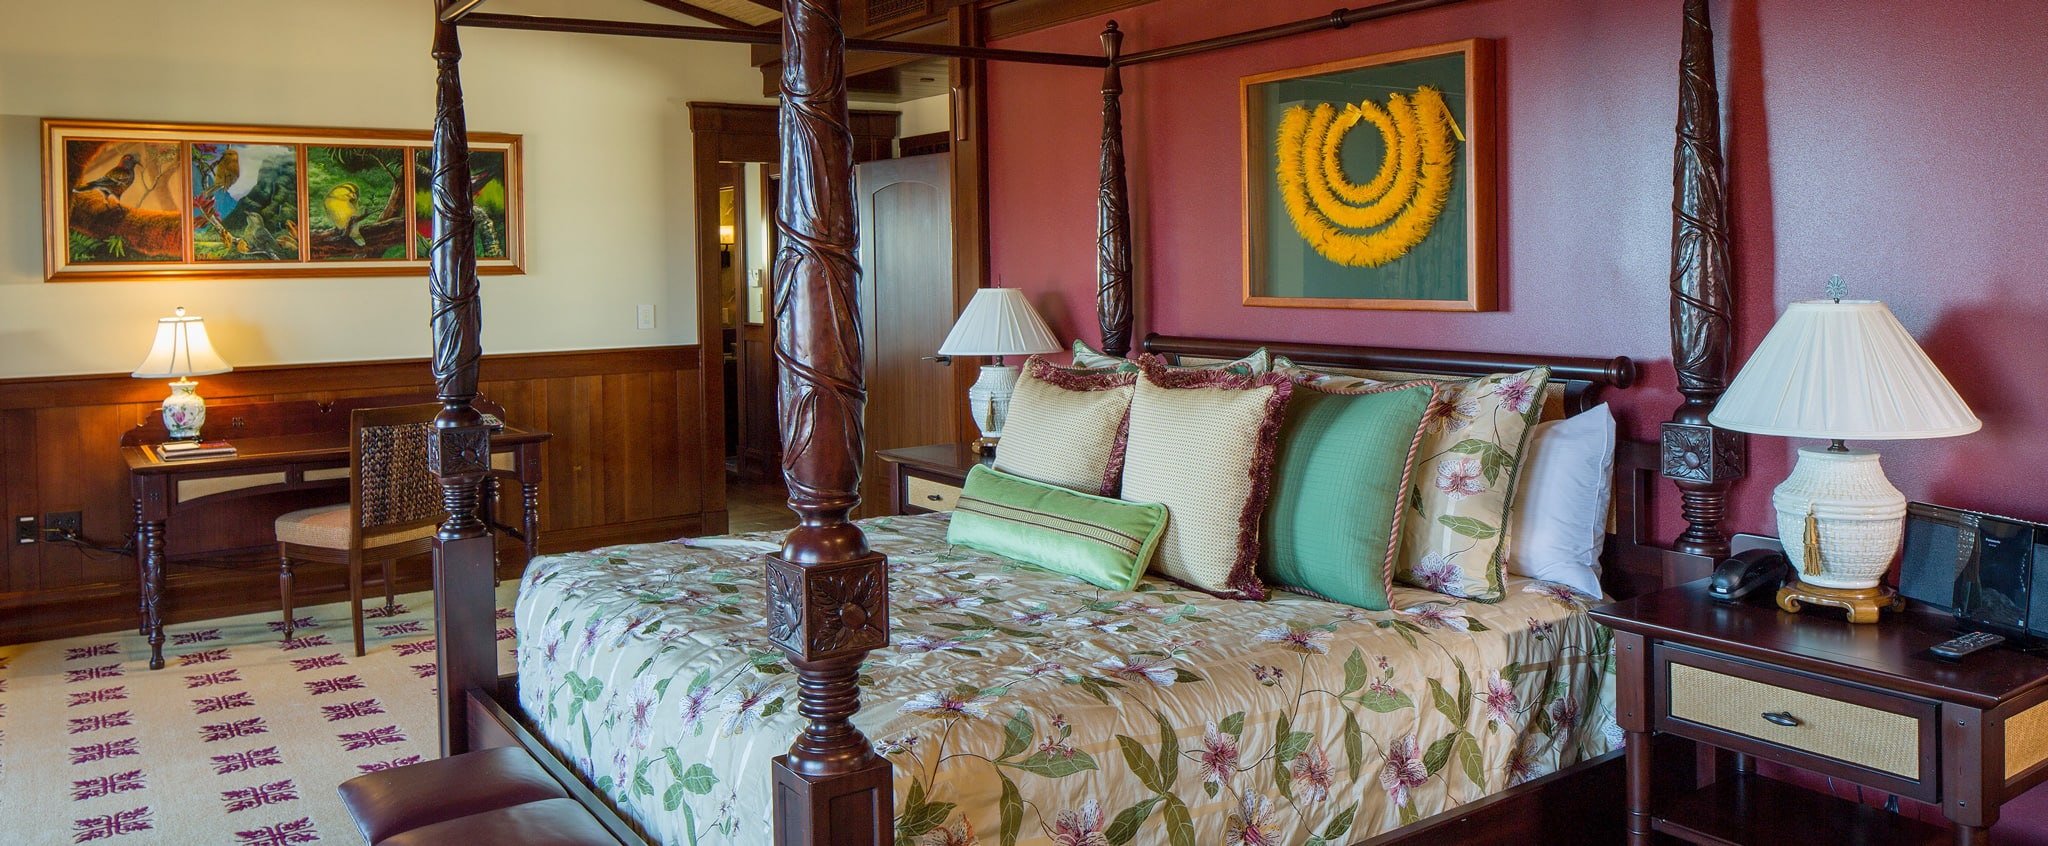 In The Master Bedroom Of 2 Suite There Is A Carved Wooden 4